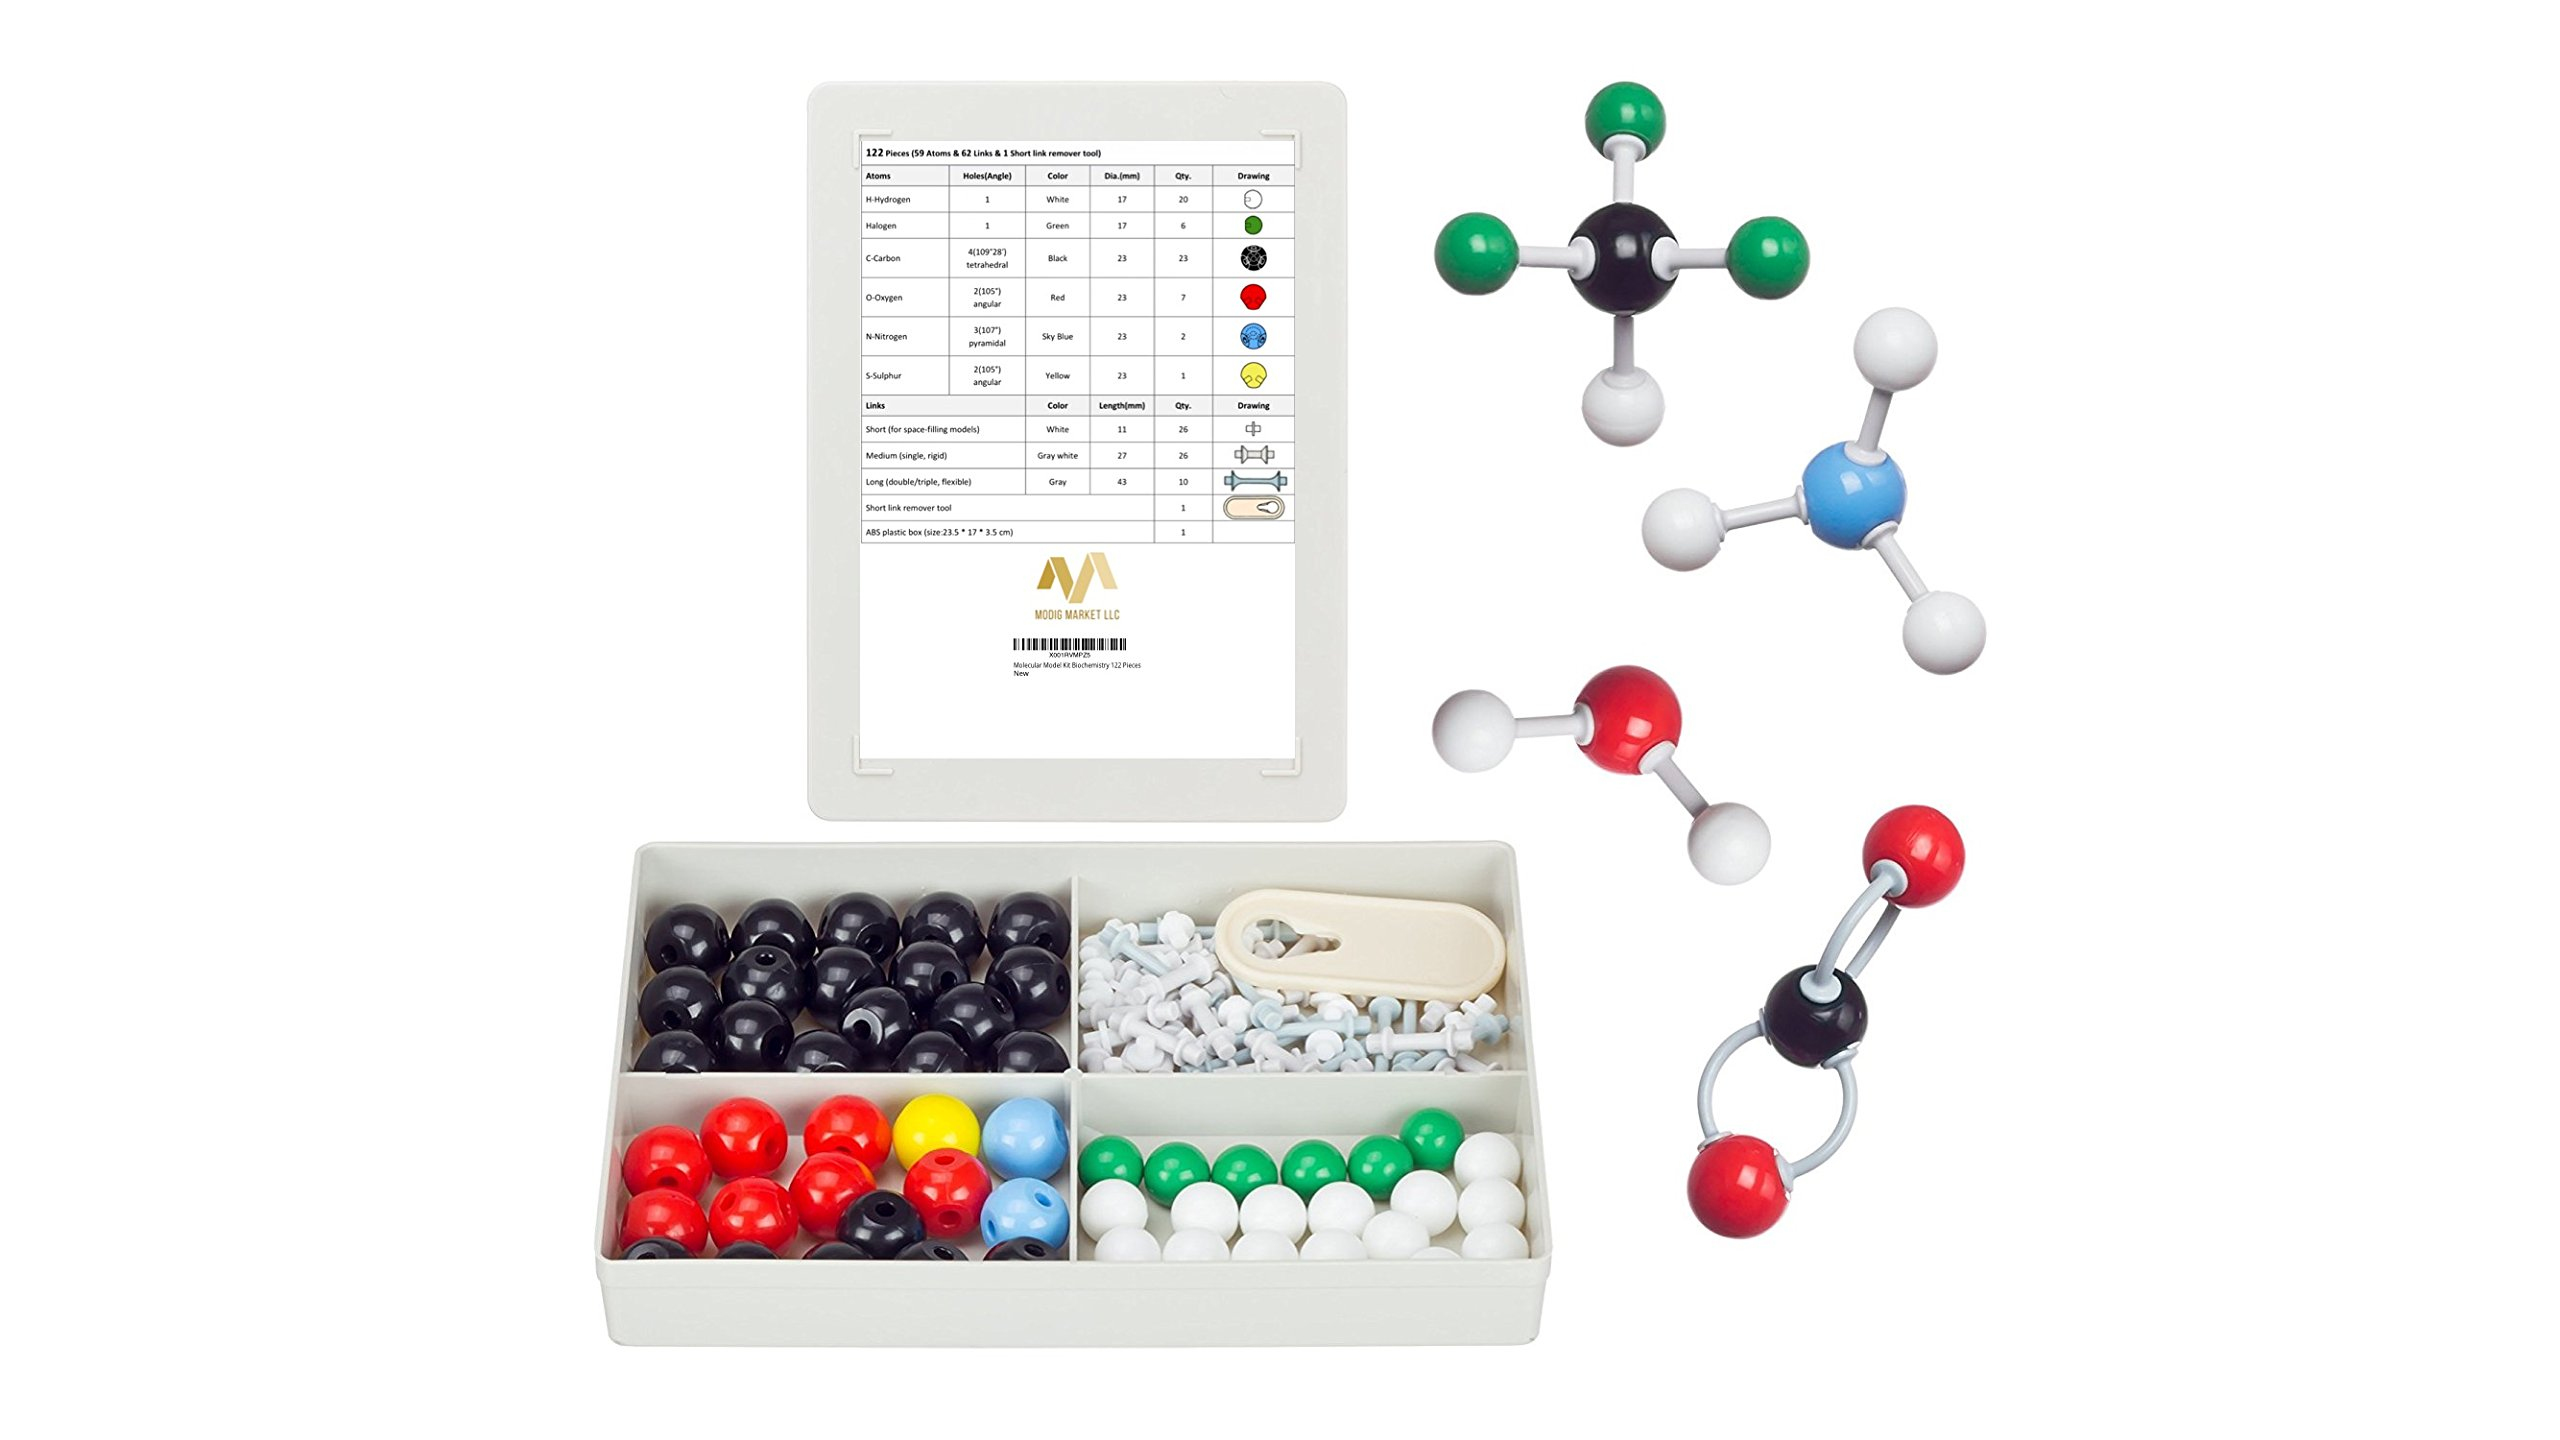 Organic Chemistry Molecular Model Kit (122 Pieces) - Student or Teacher pack with Atoms, Bonds, and Remover